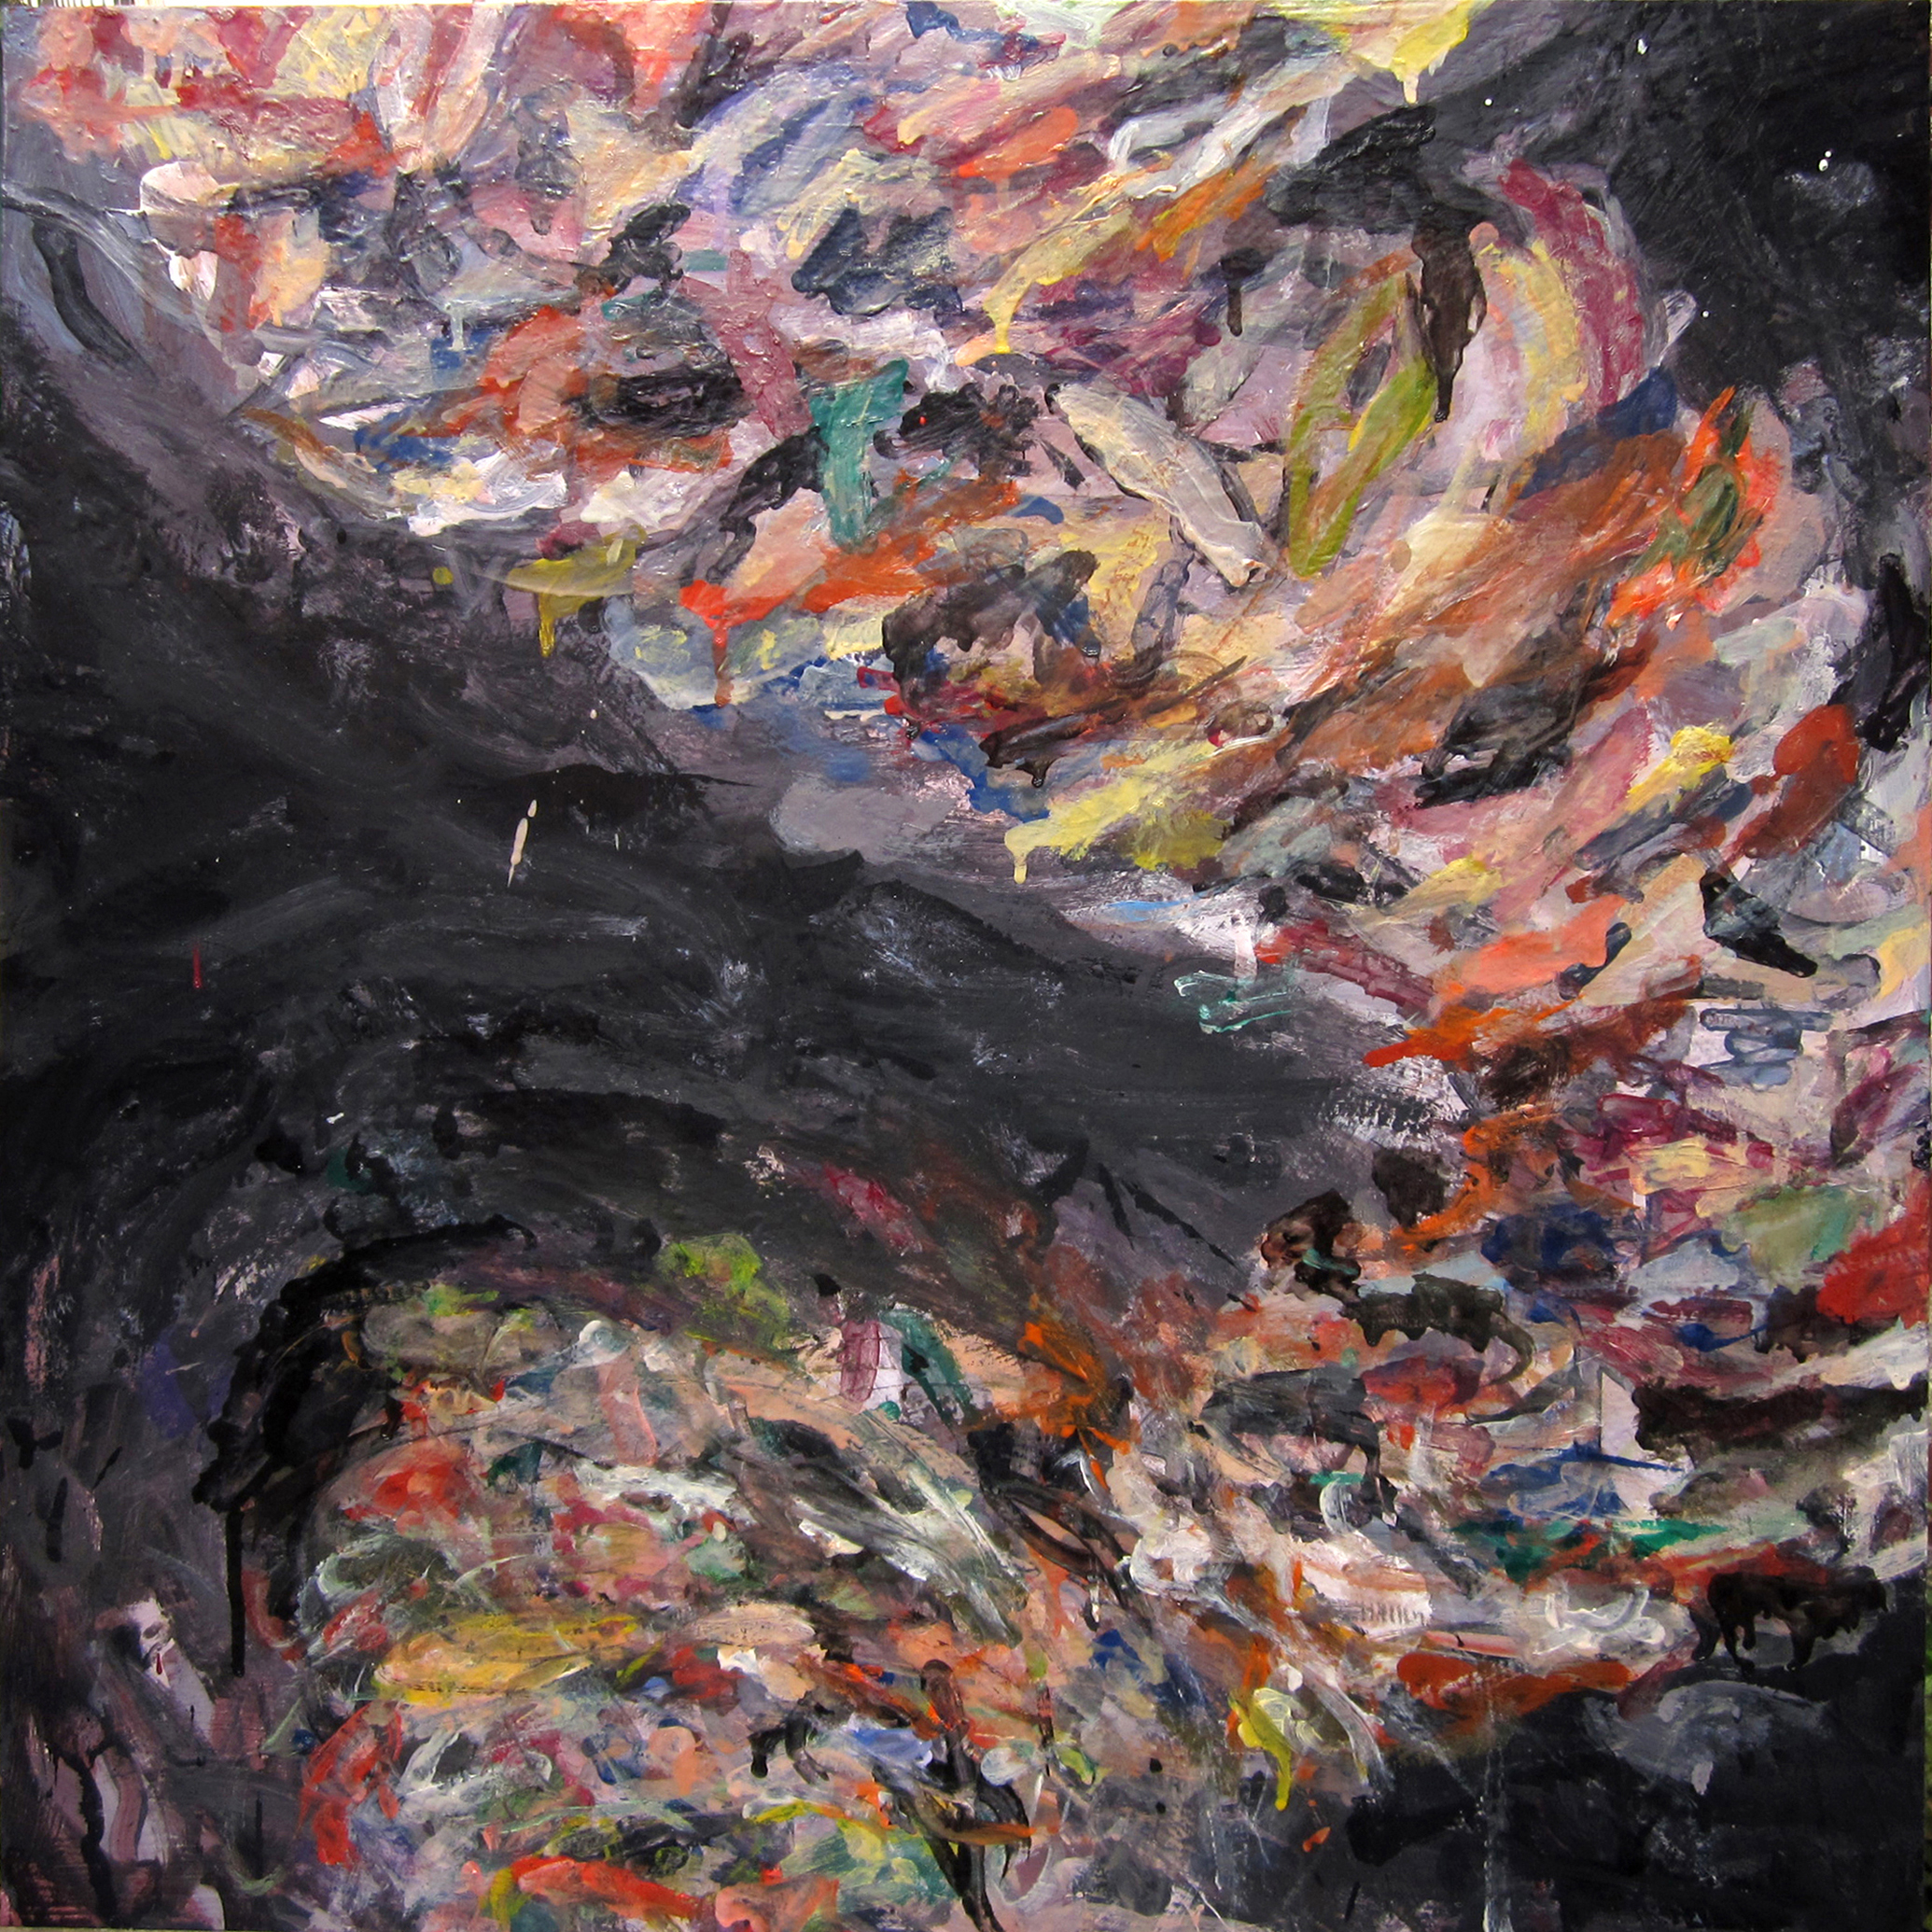 Dirty Panties Tornado (Painting II)